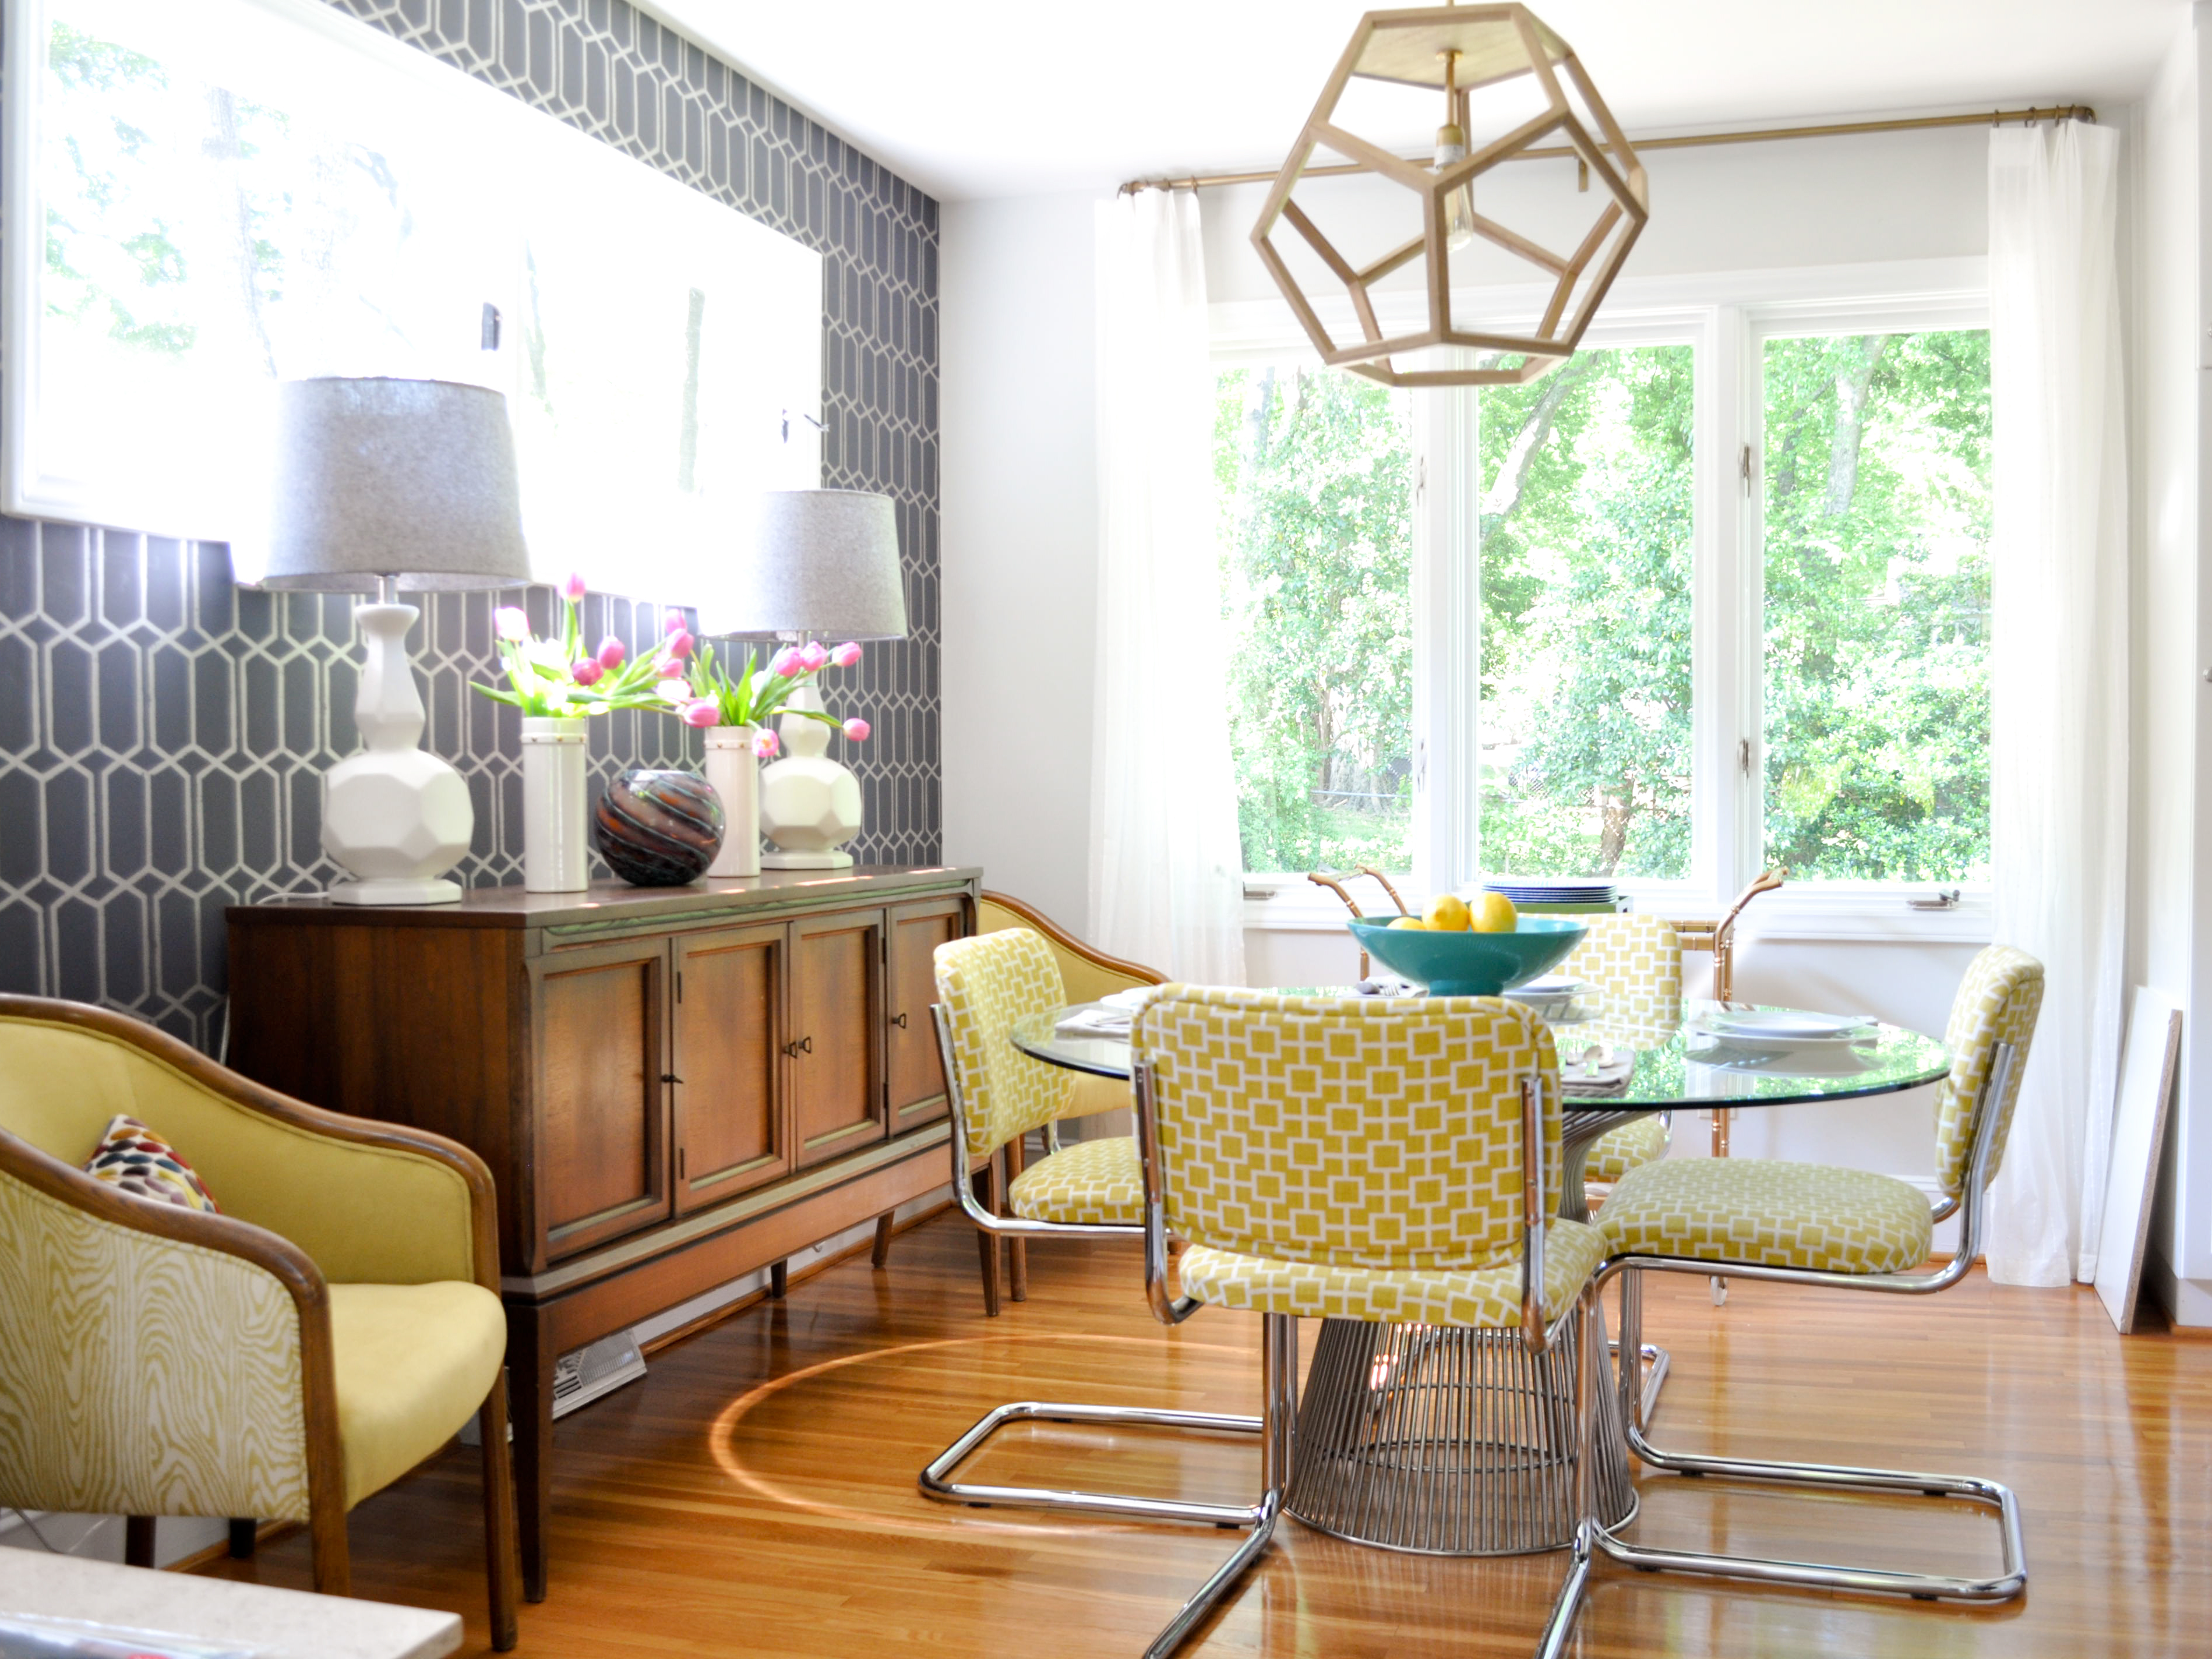 Reasons Why the World loves Mid-Century Modern Design